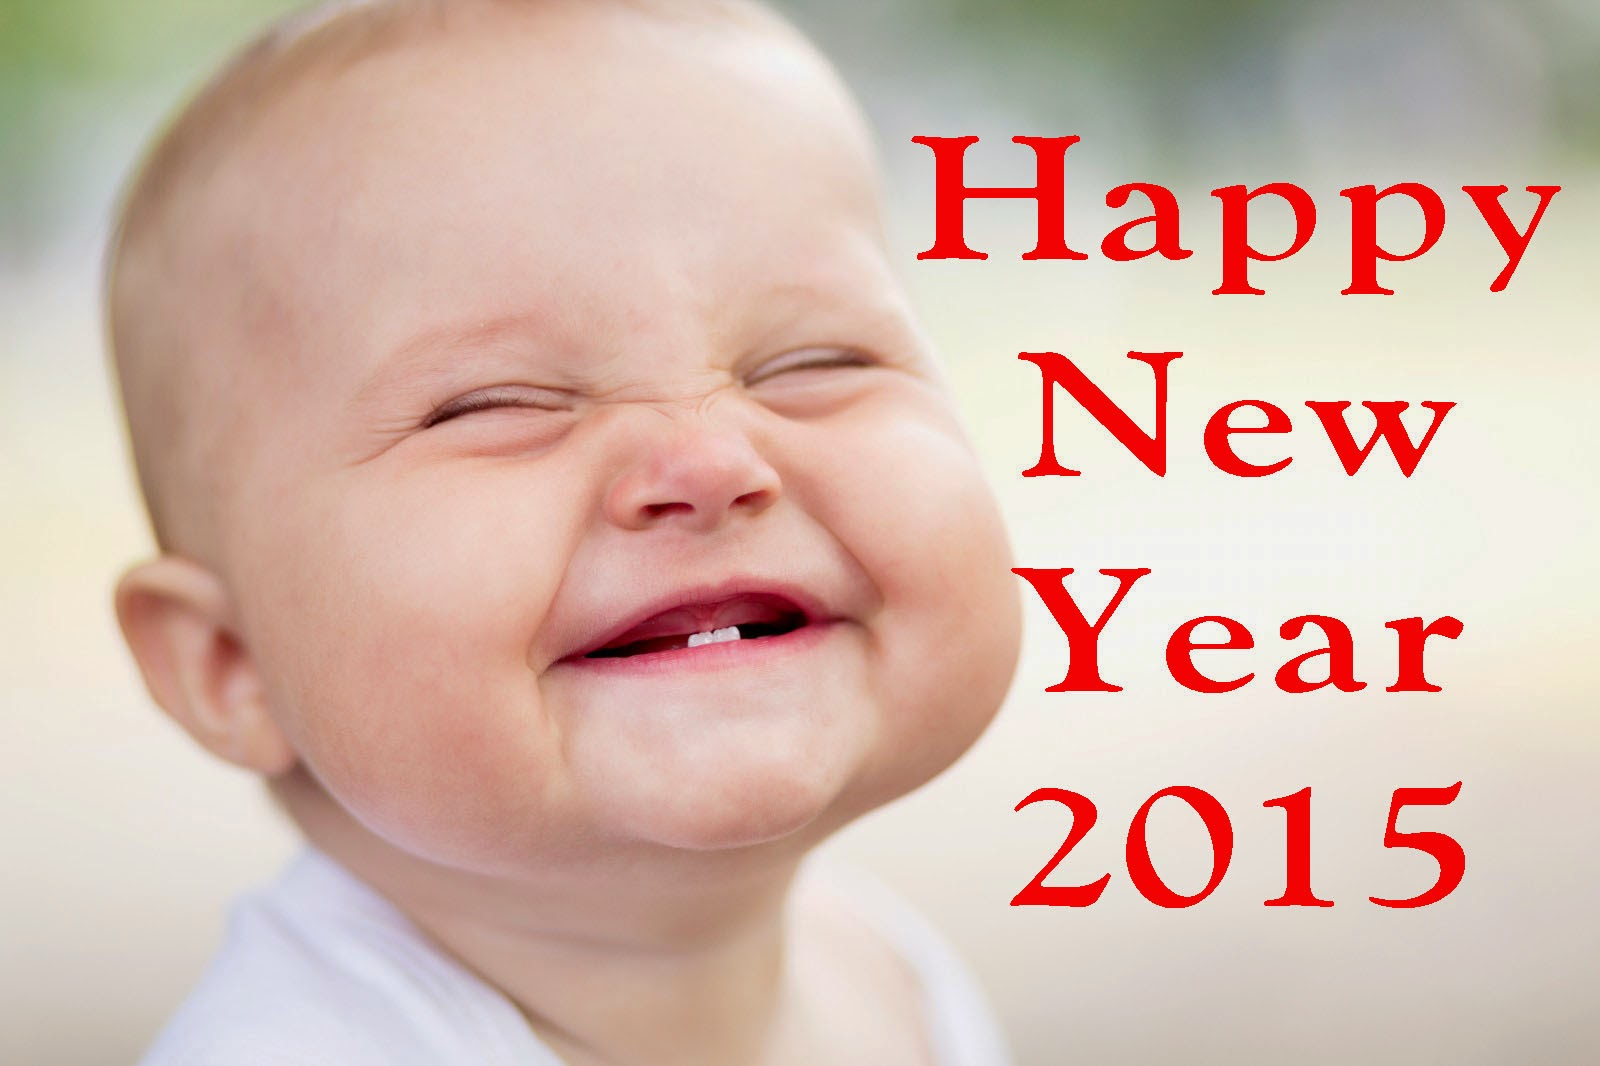 smiling cute babies hd wallpaper of new year 2015